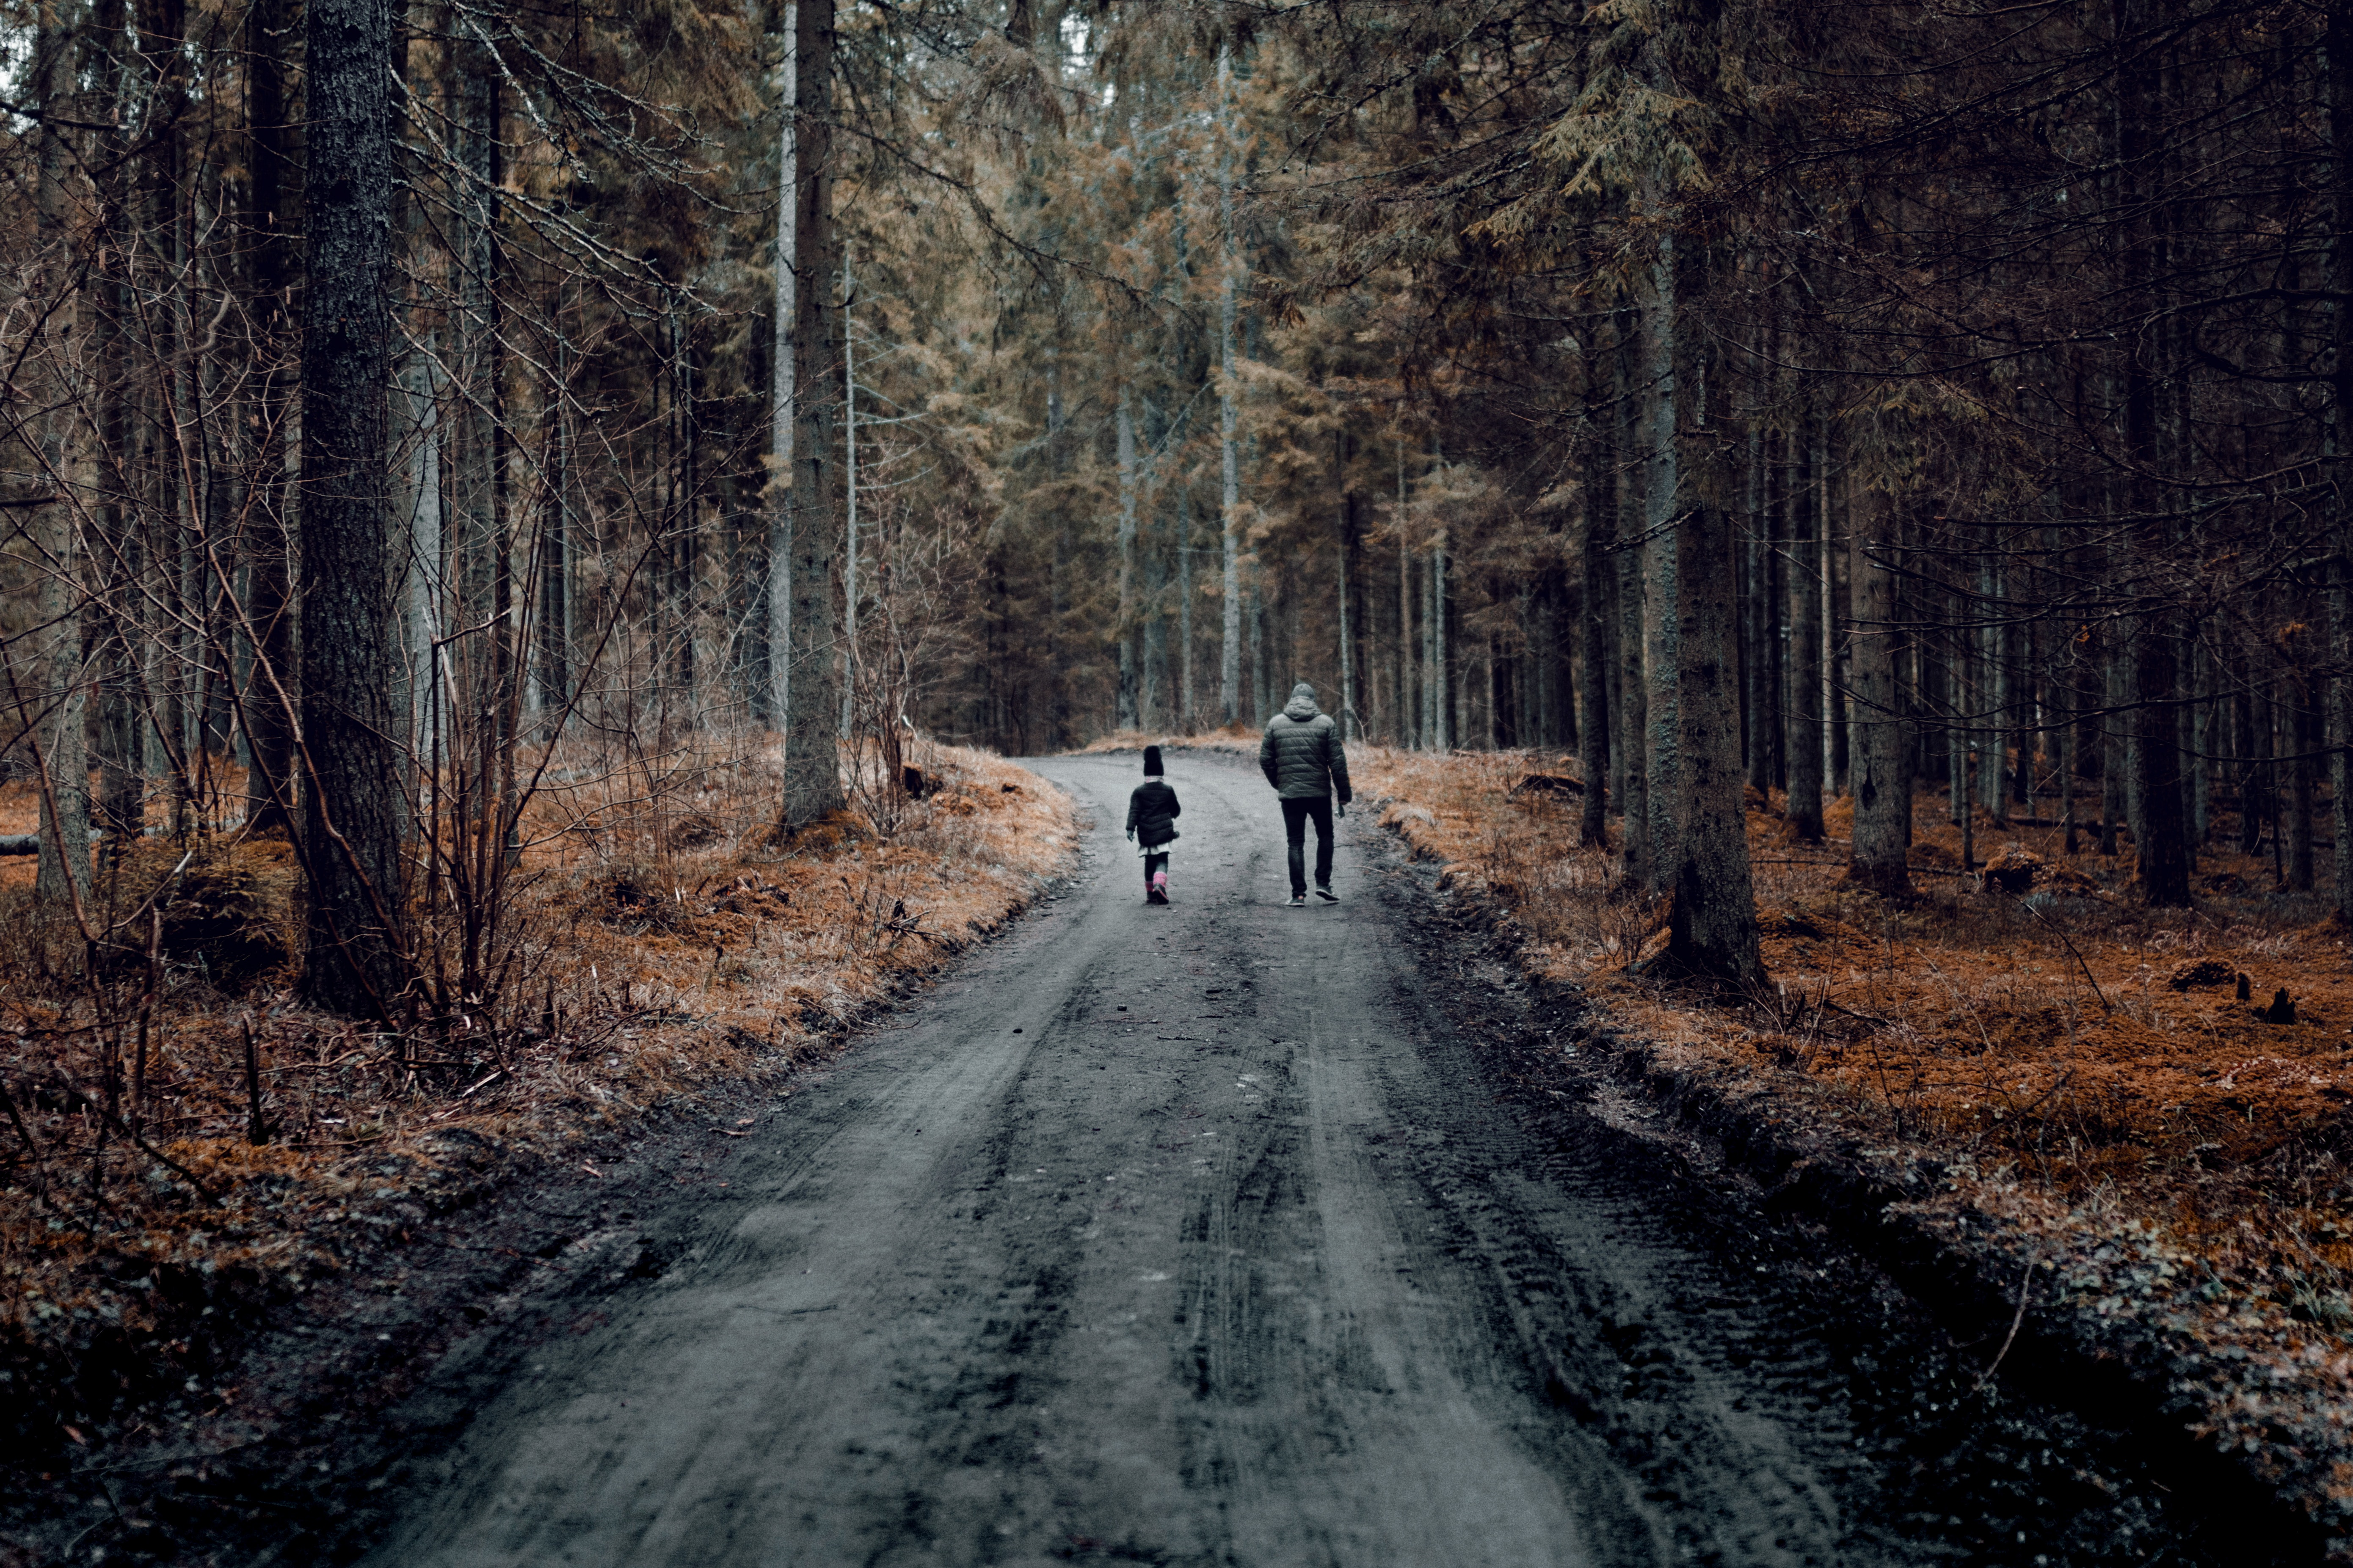 Child and adult walking in the forest